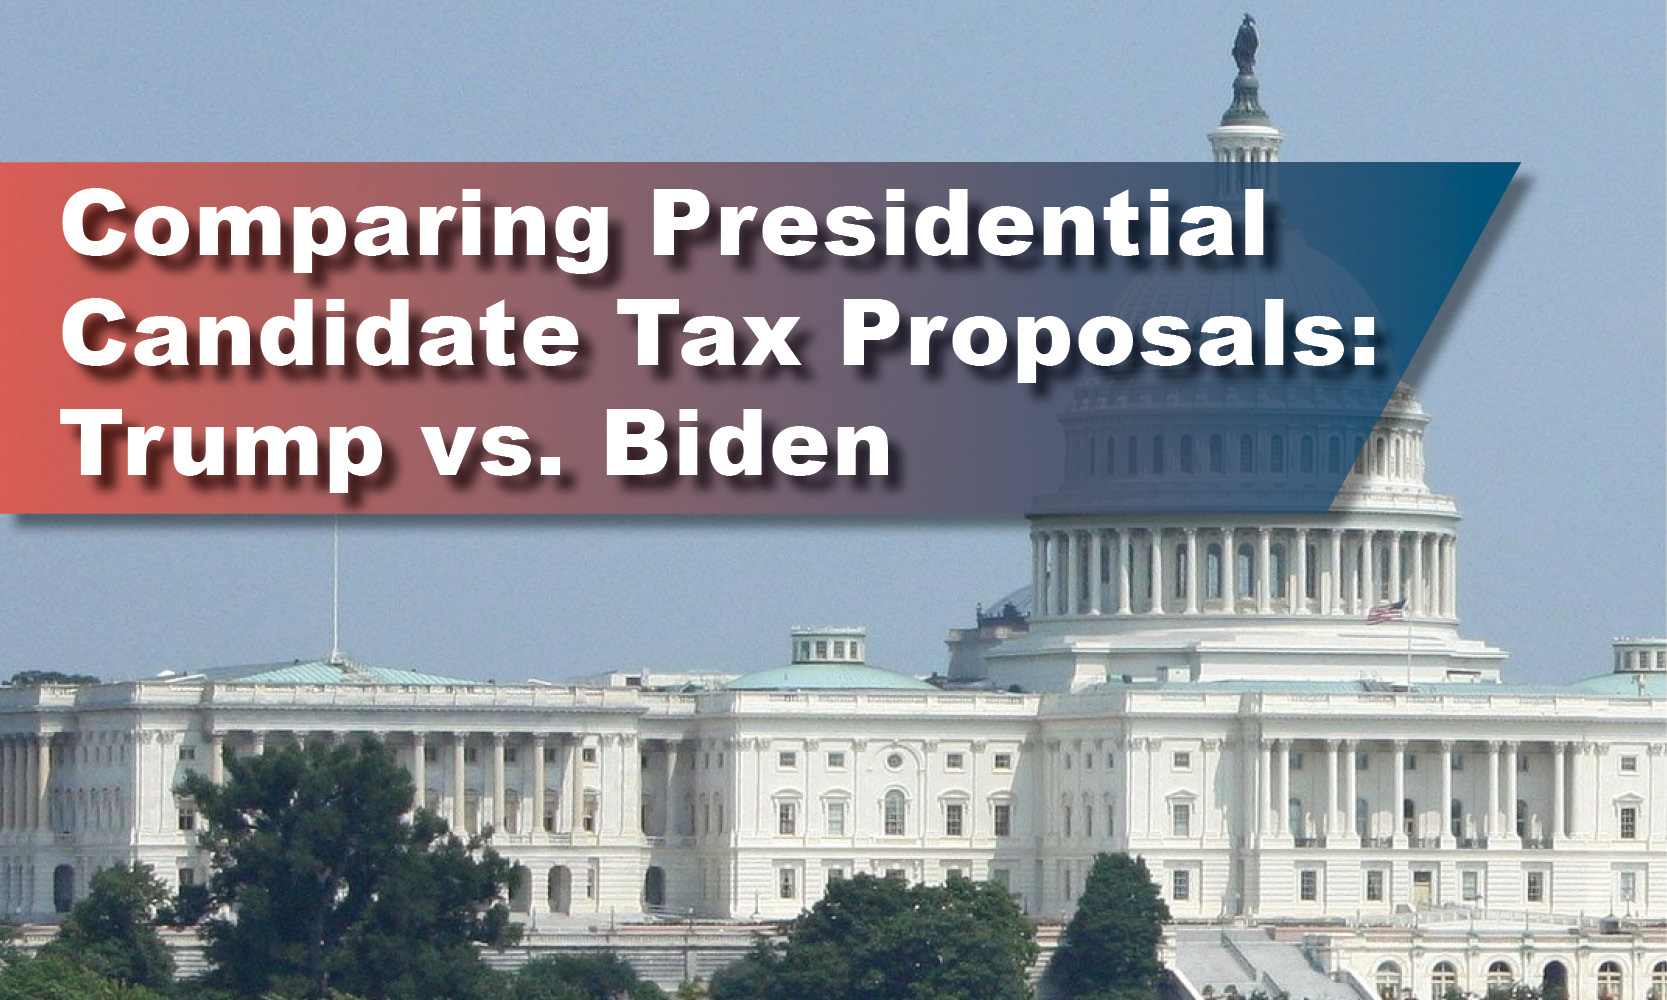 Comparing Presidential Candidate Tax Proposals: Trump vs. Biden